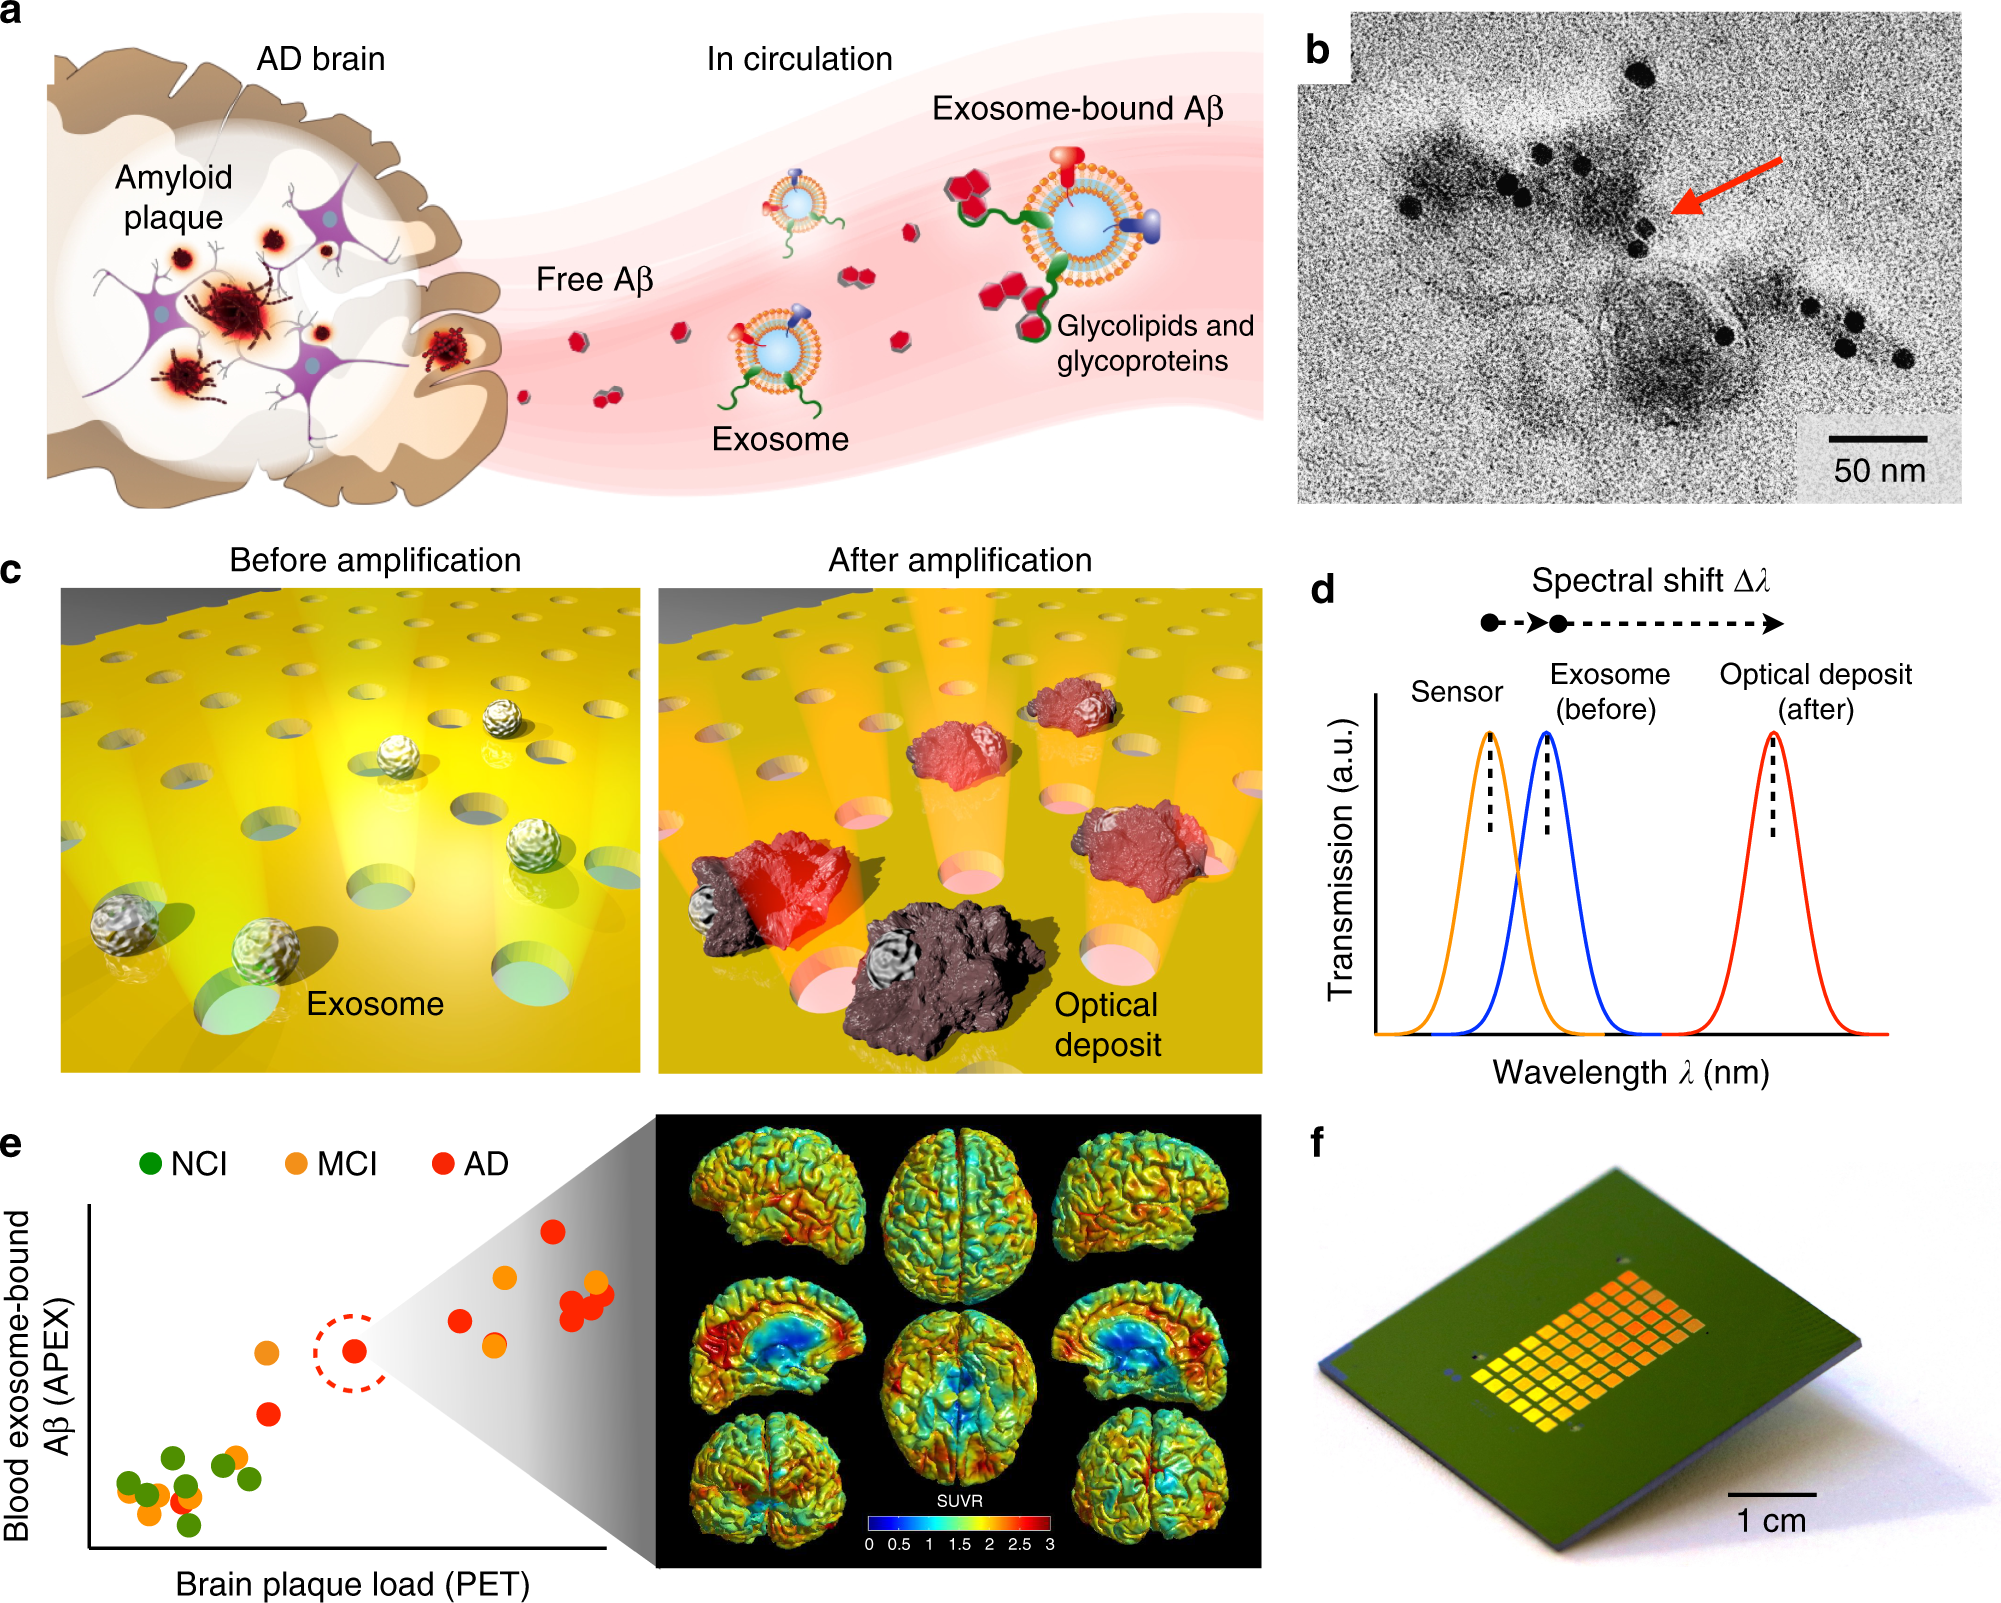 Subtyping of circulating exosome-bound amyloid β reflects